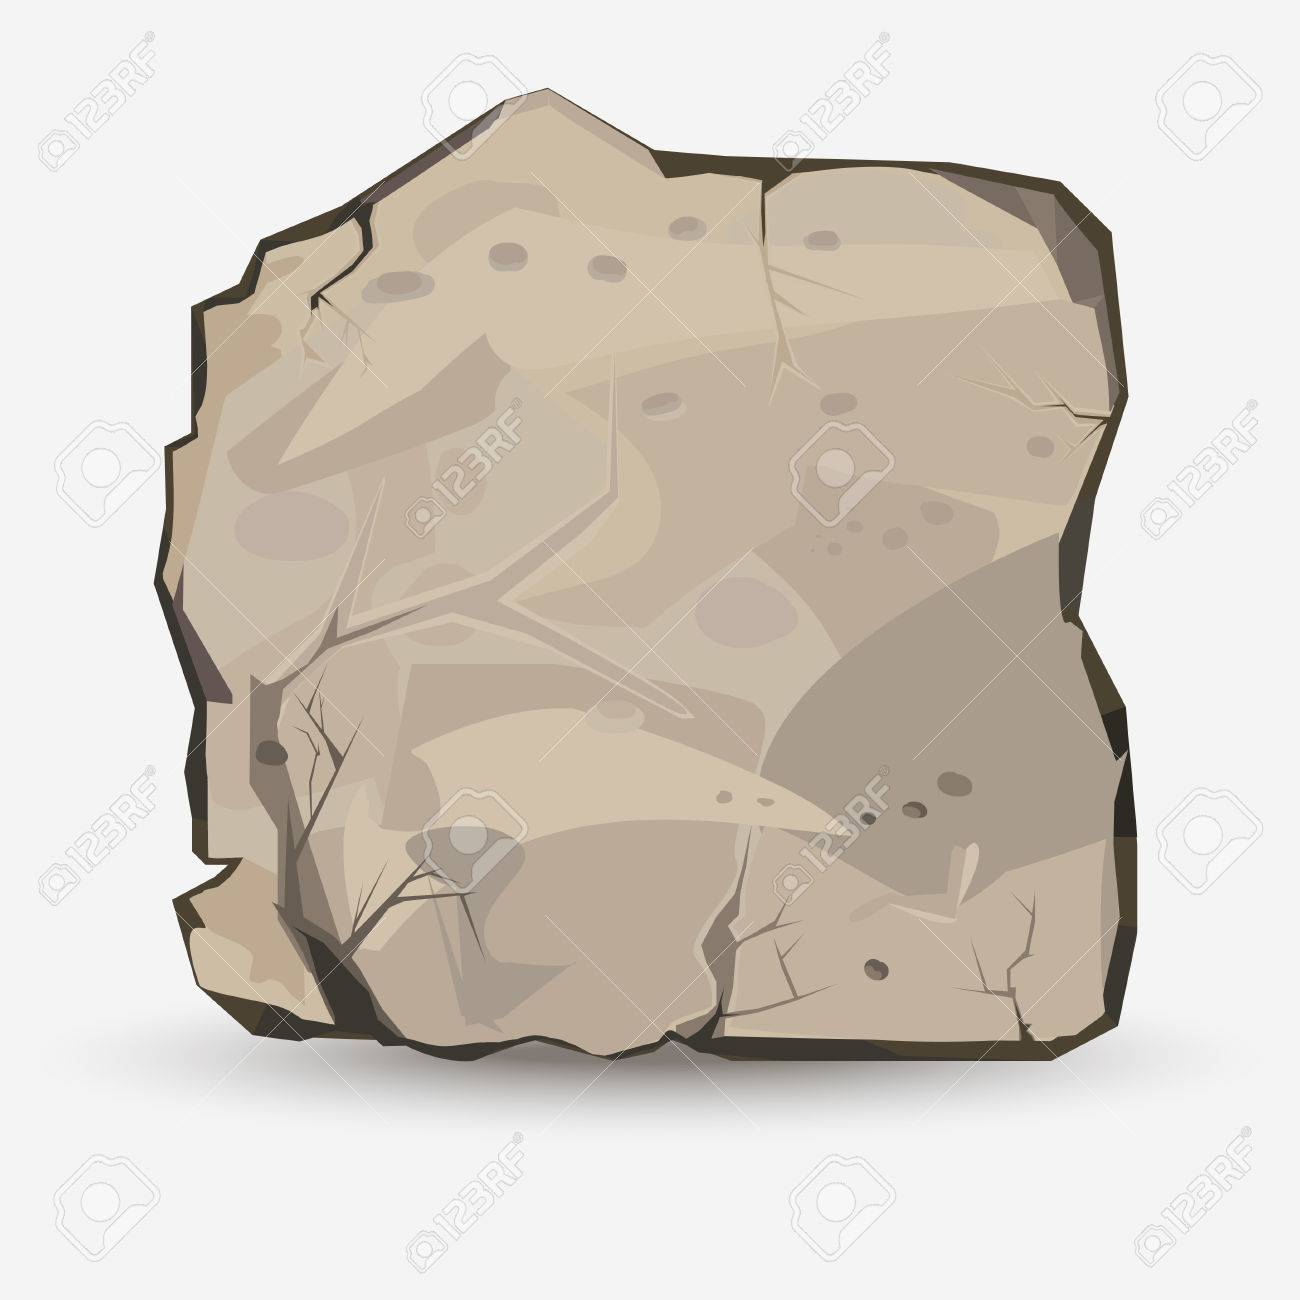 Rock stone in style. Big boulder. Mineral background. Vector - 52255533